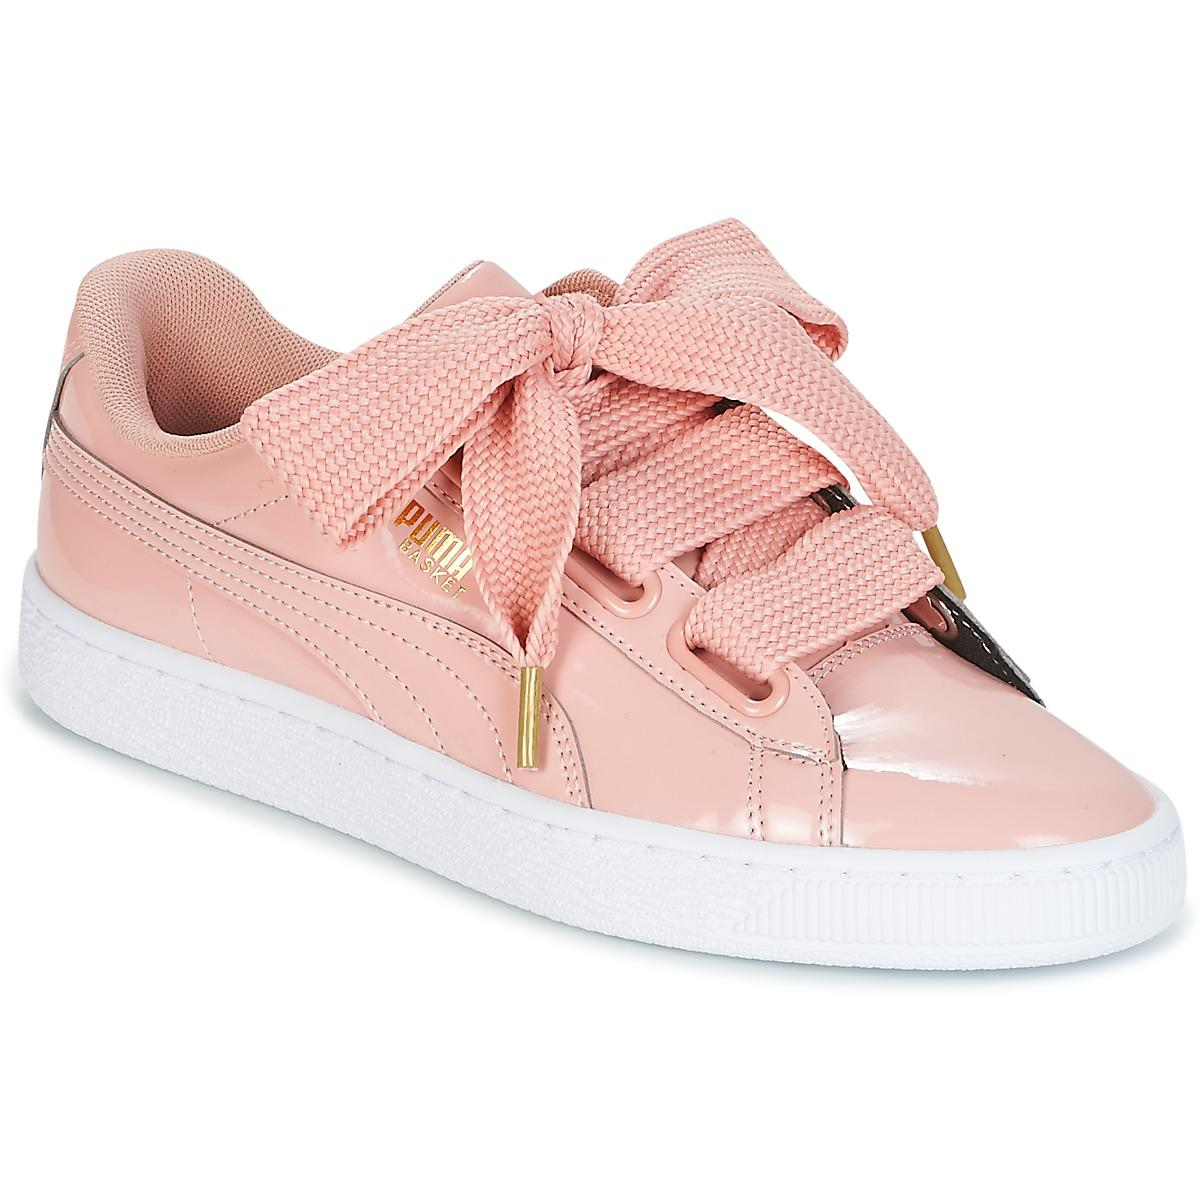 c8092b5960c PUMA Basket Heart Patent W s Women s Shoes (trainers) In Pink in ...